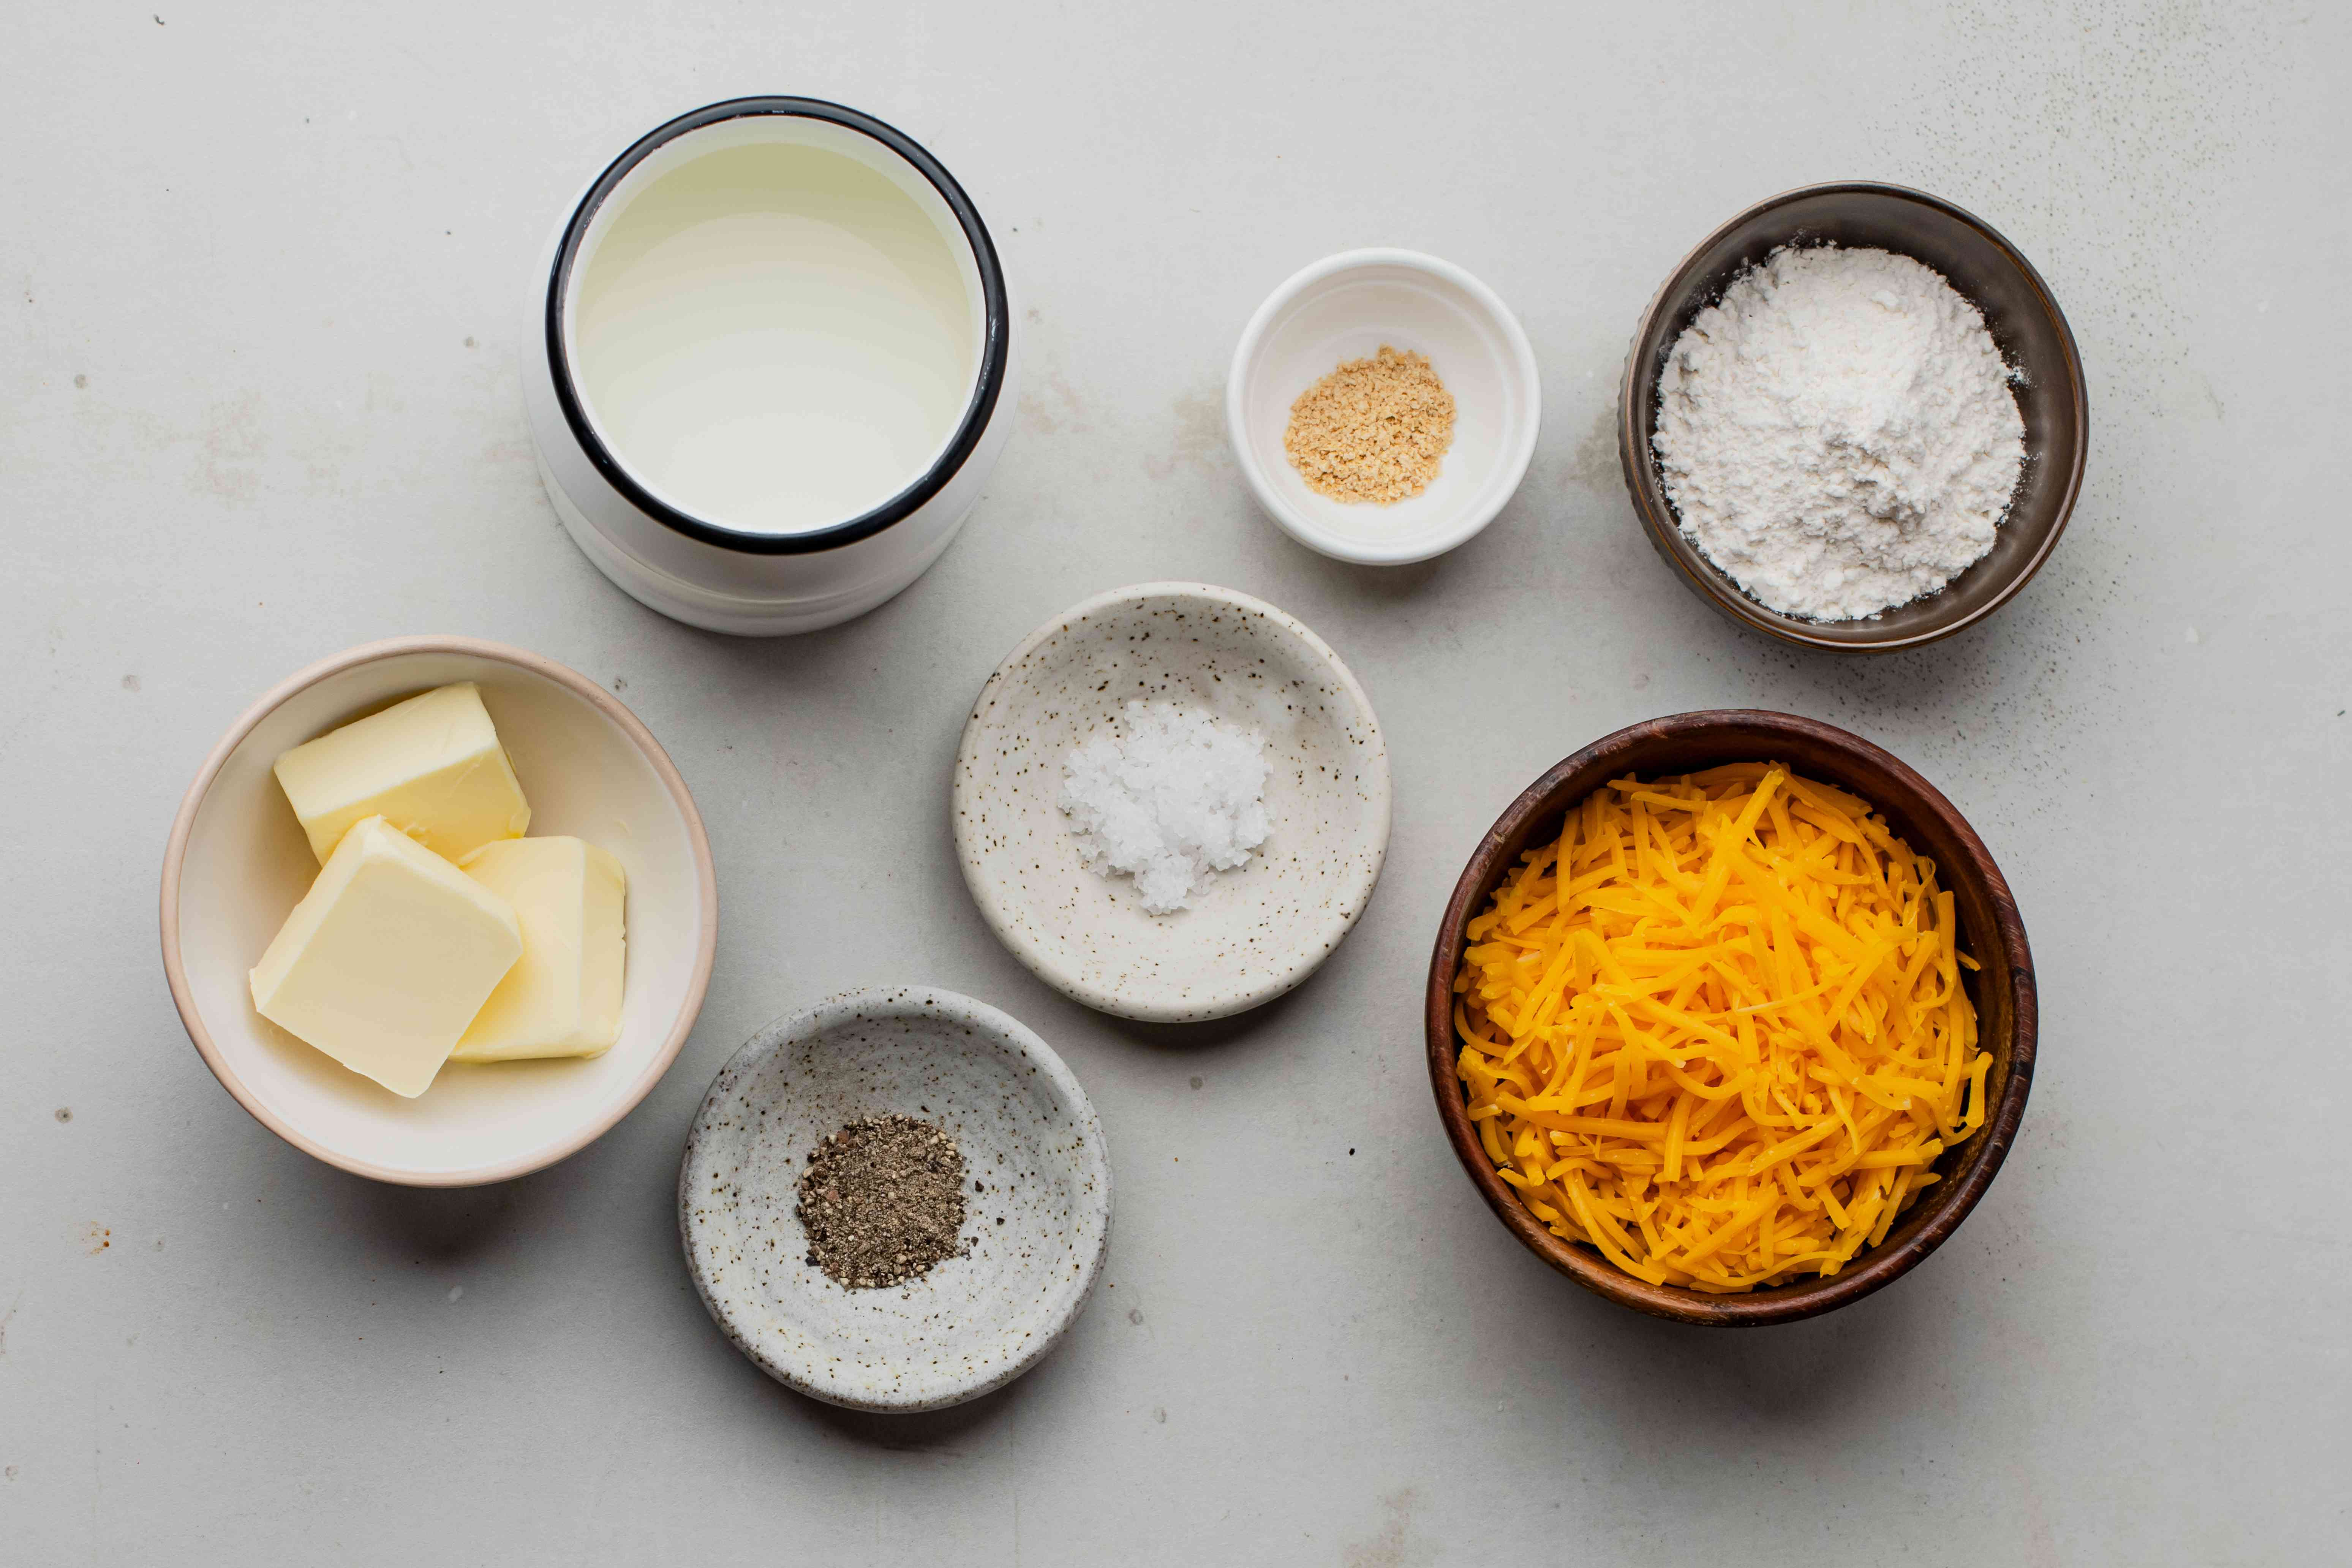 Ingredients for easy cheddar cheese sauce